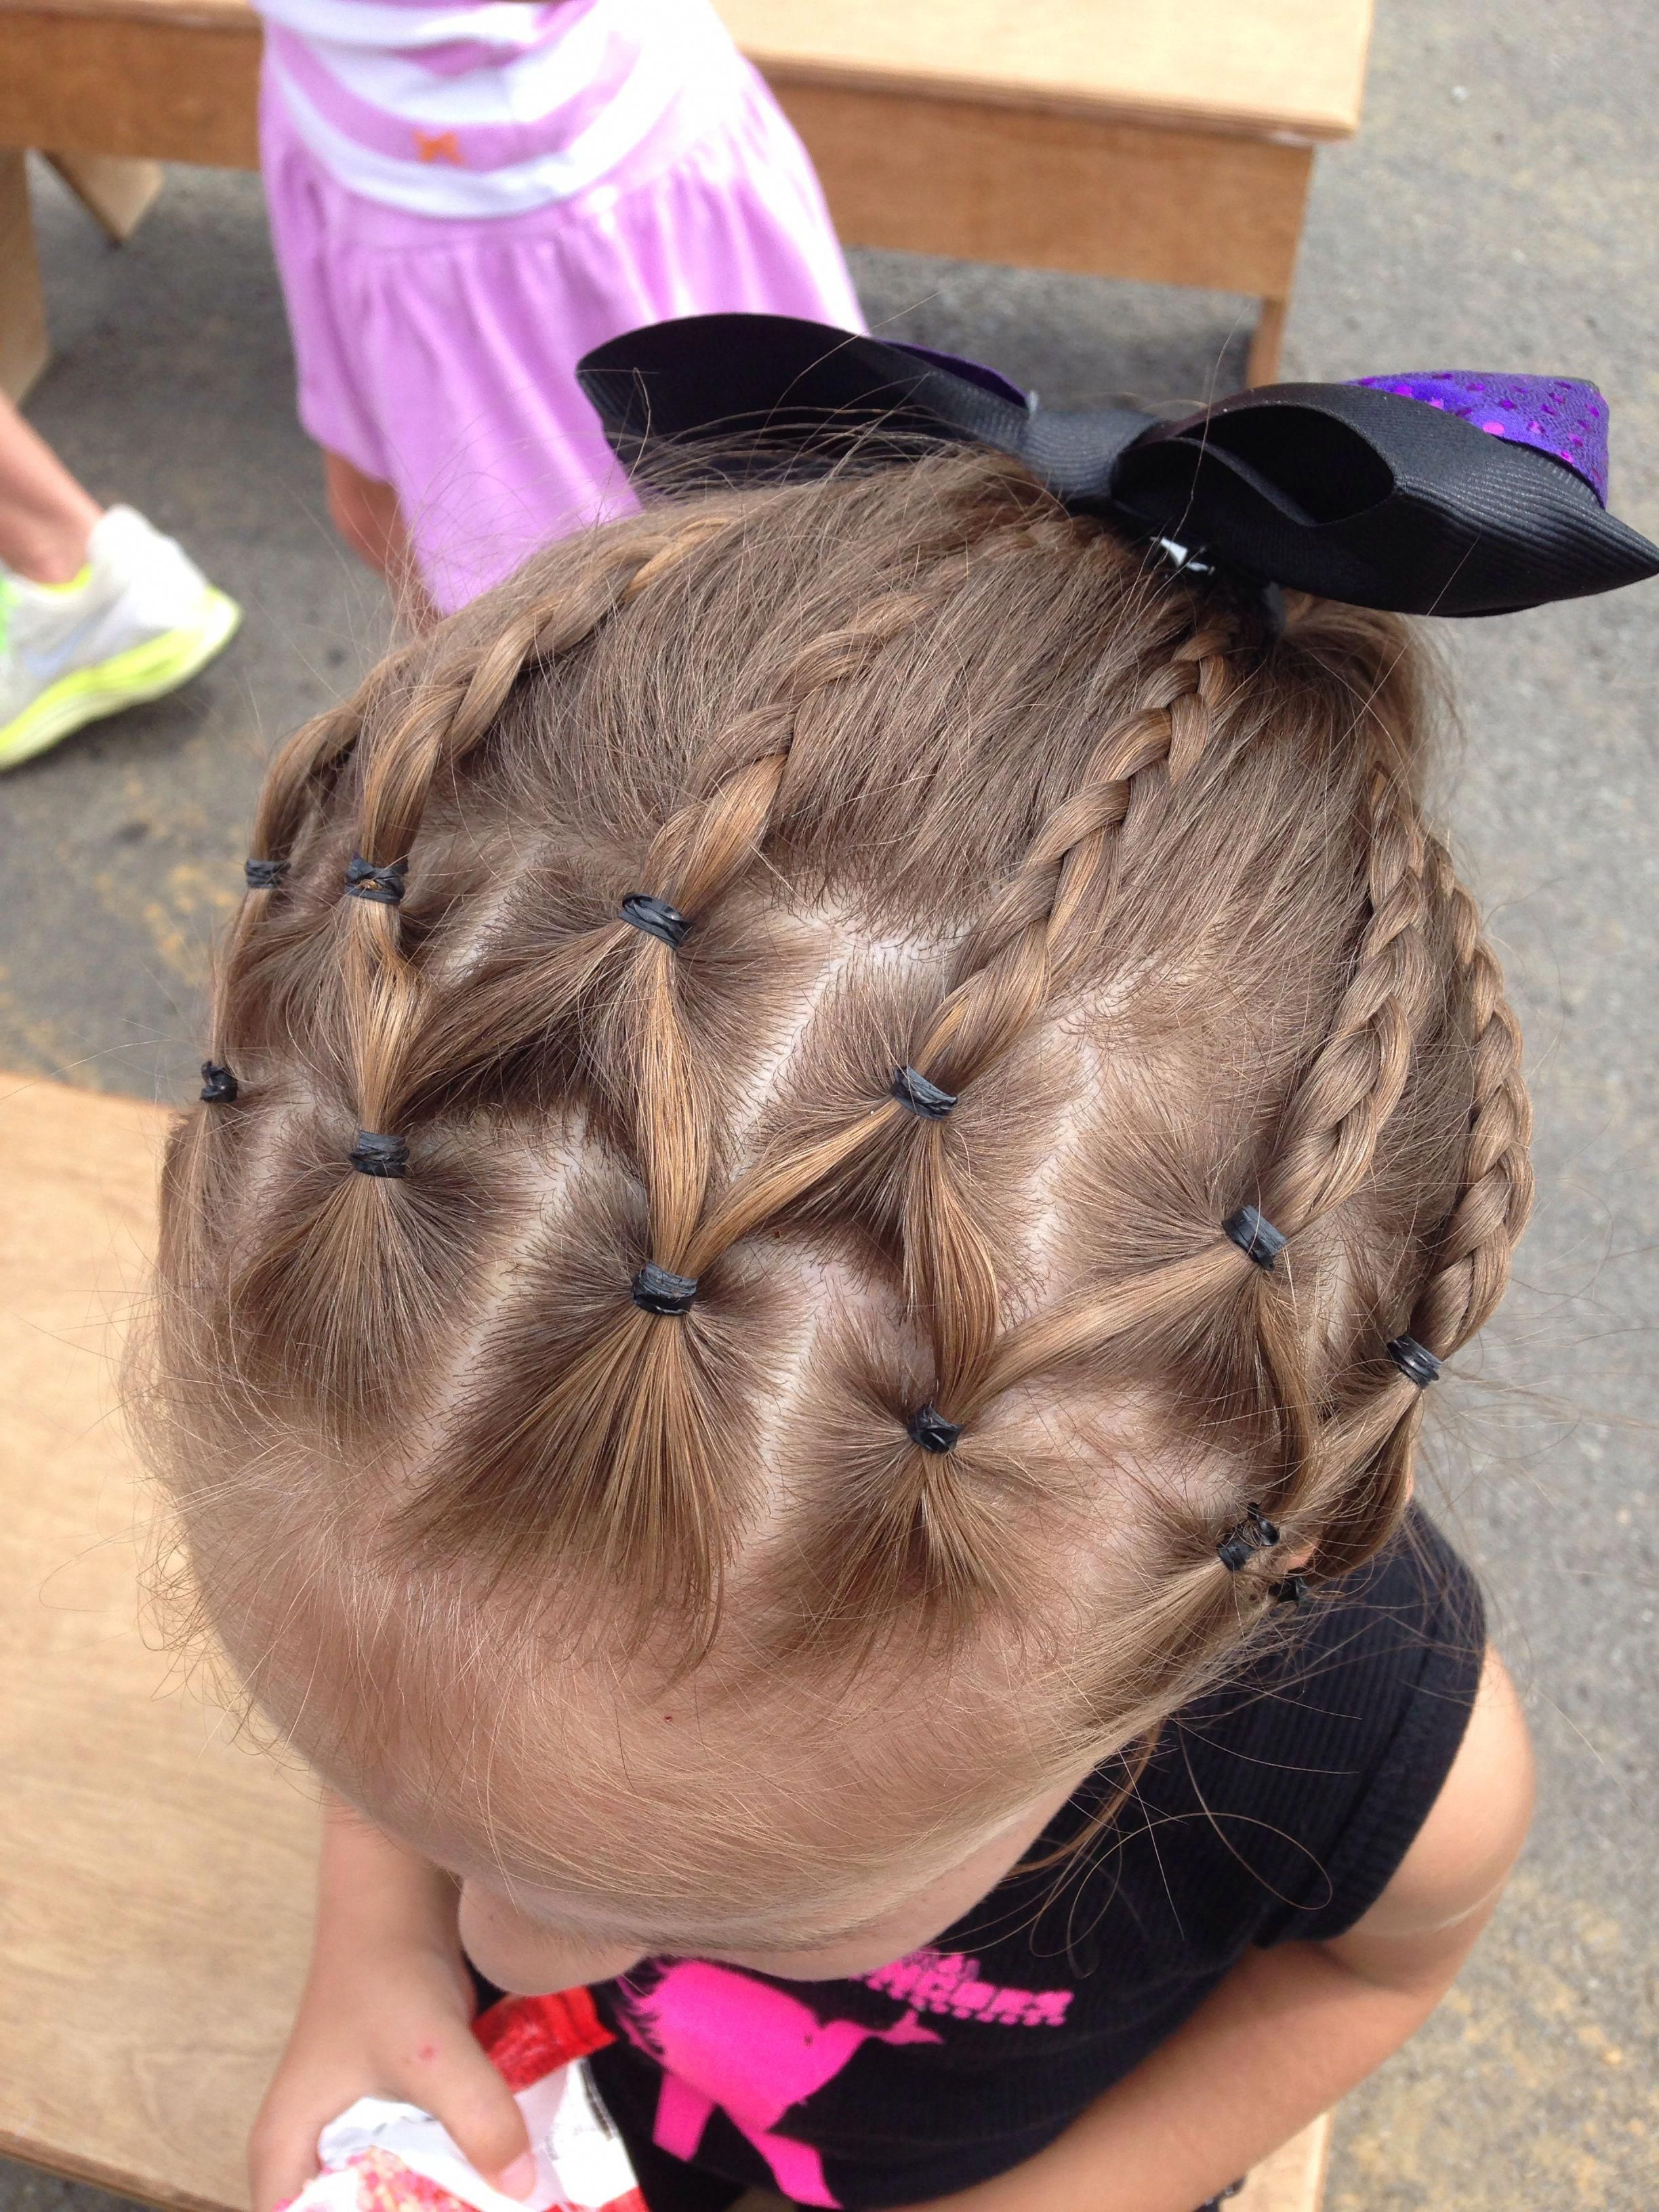 Hairstyle | Hairstyles For Medium Hair Kids | Easy Hairdos For Toddlers 20190426 | Girls hairdos ...